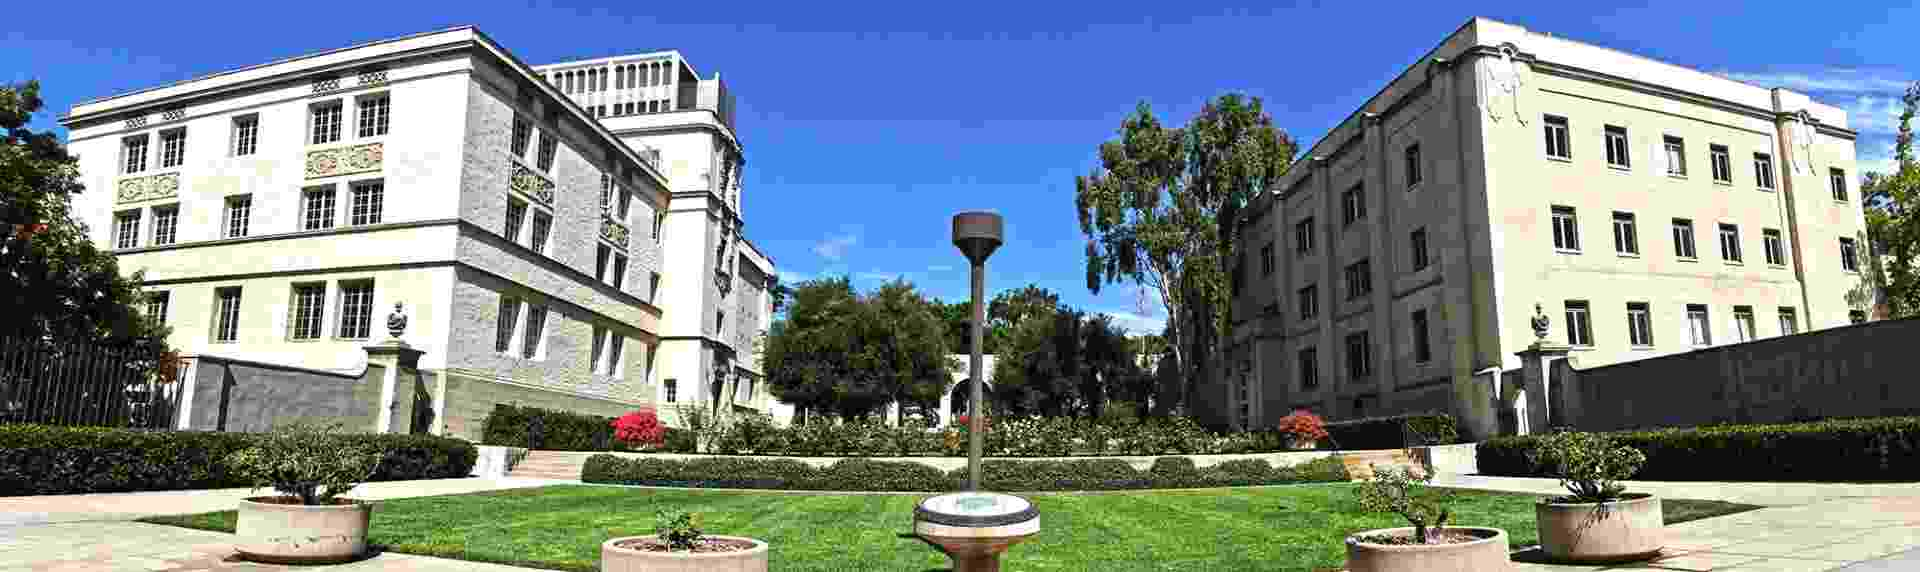 Caltech (Instituto de Tecnologia da Califórnia) - Wikimedia Commons